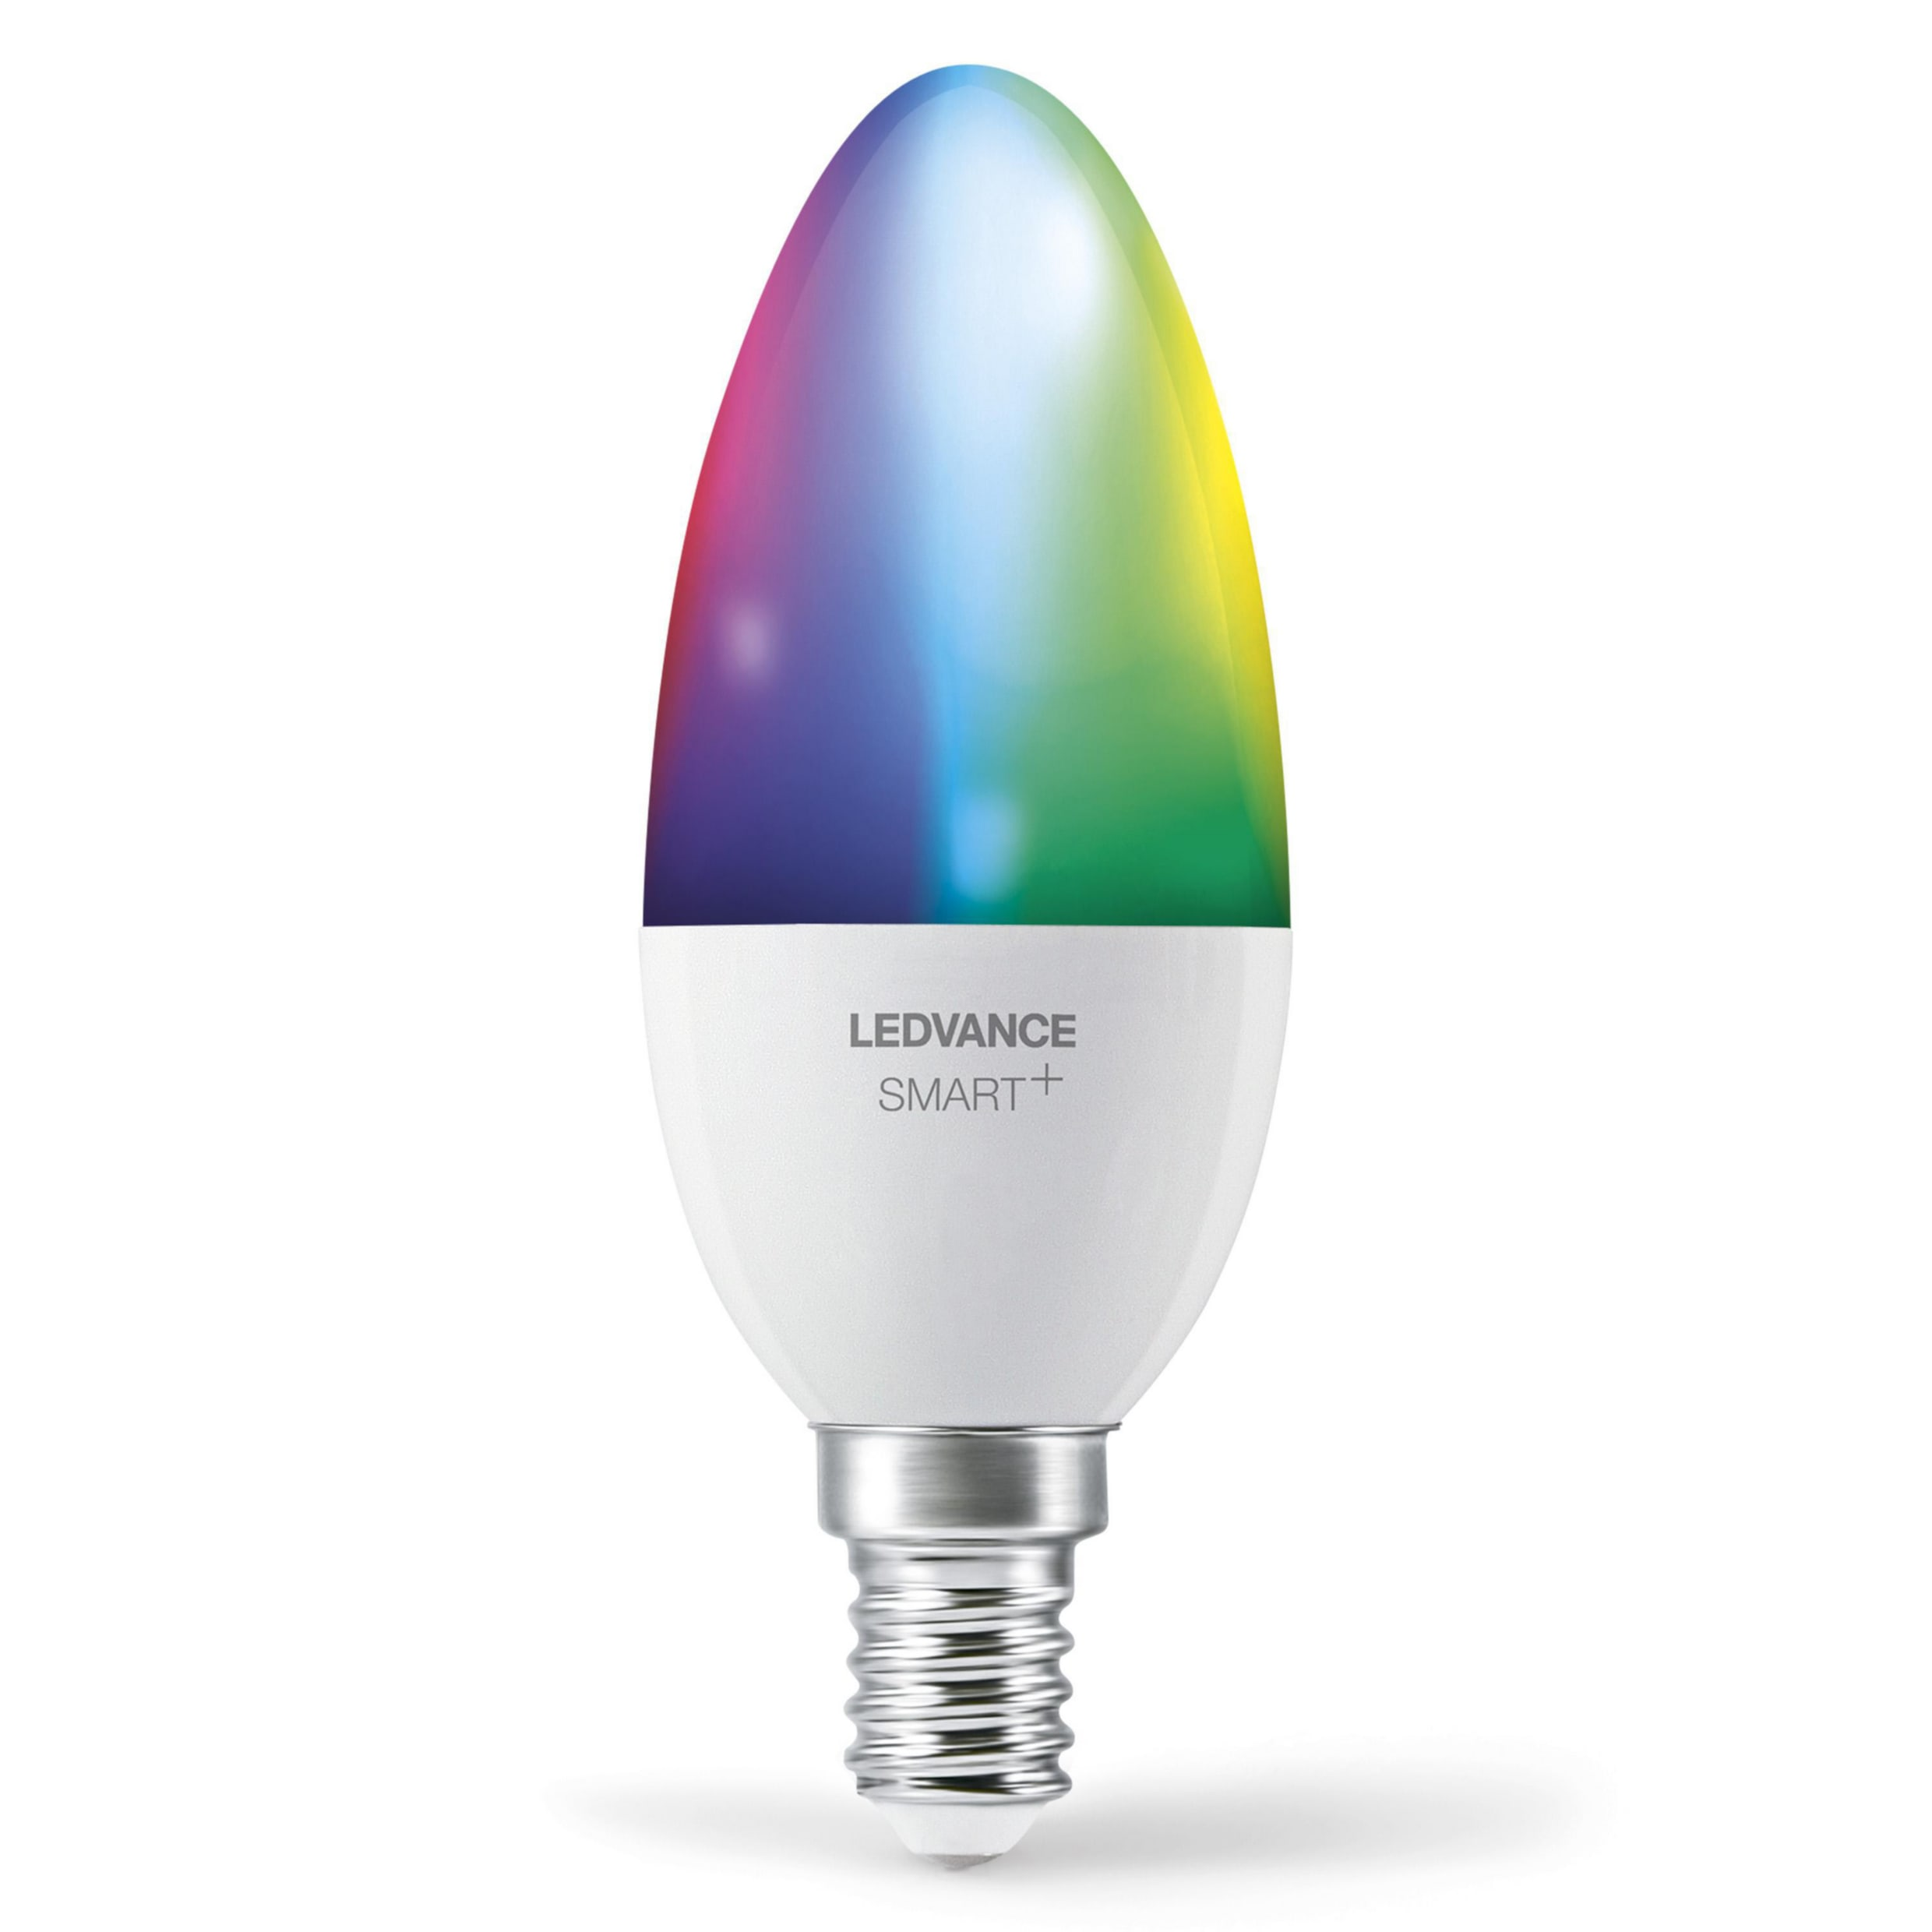 LEDVANCE - SMART+ candle 40W/RGBW frosted E14 WiFi